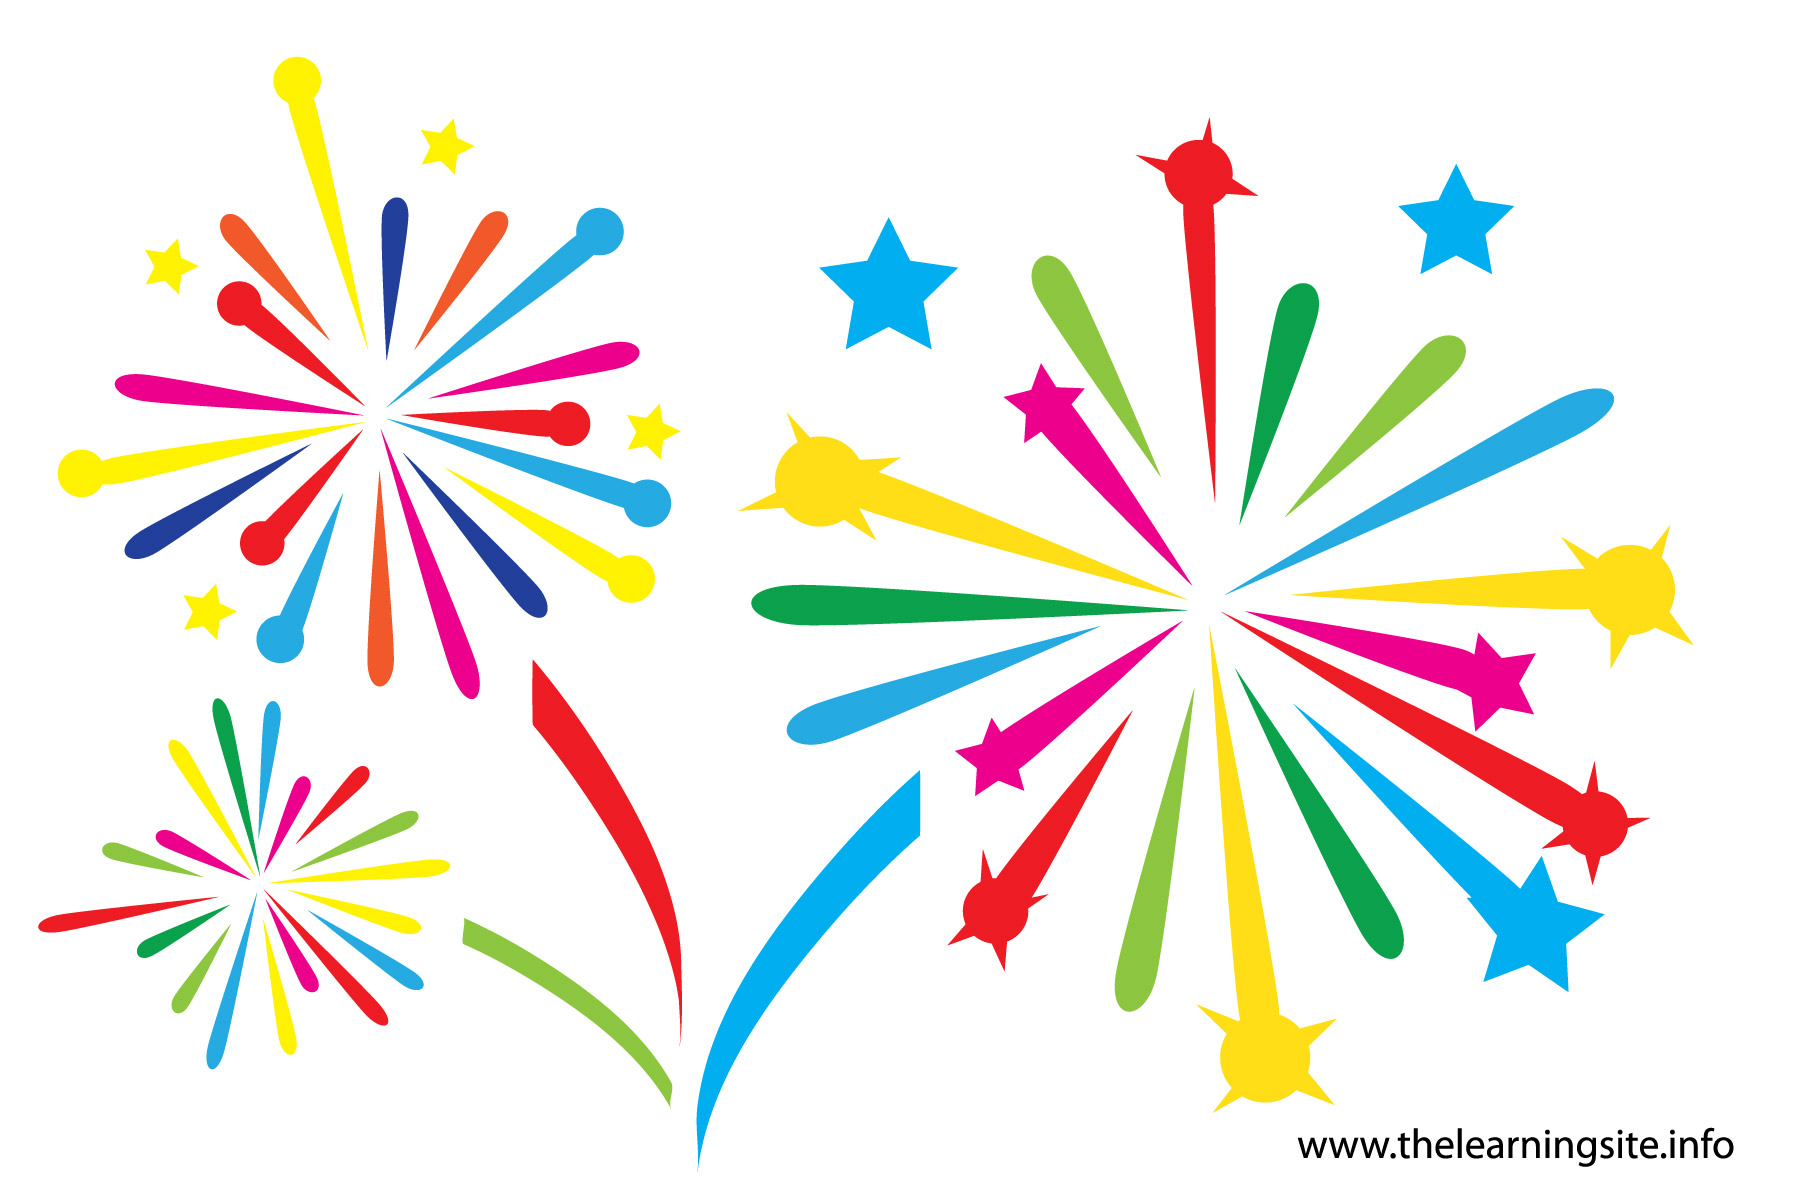 Free Fireworks Clipart Image 0-Free fireworks clipart image 0-17